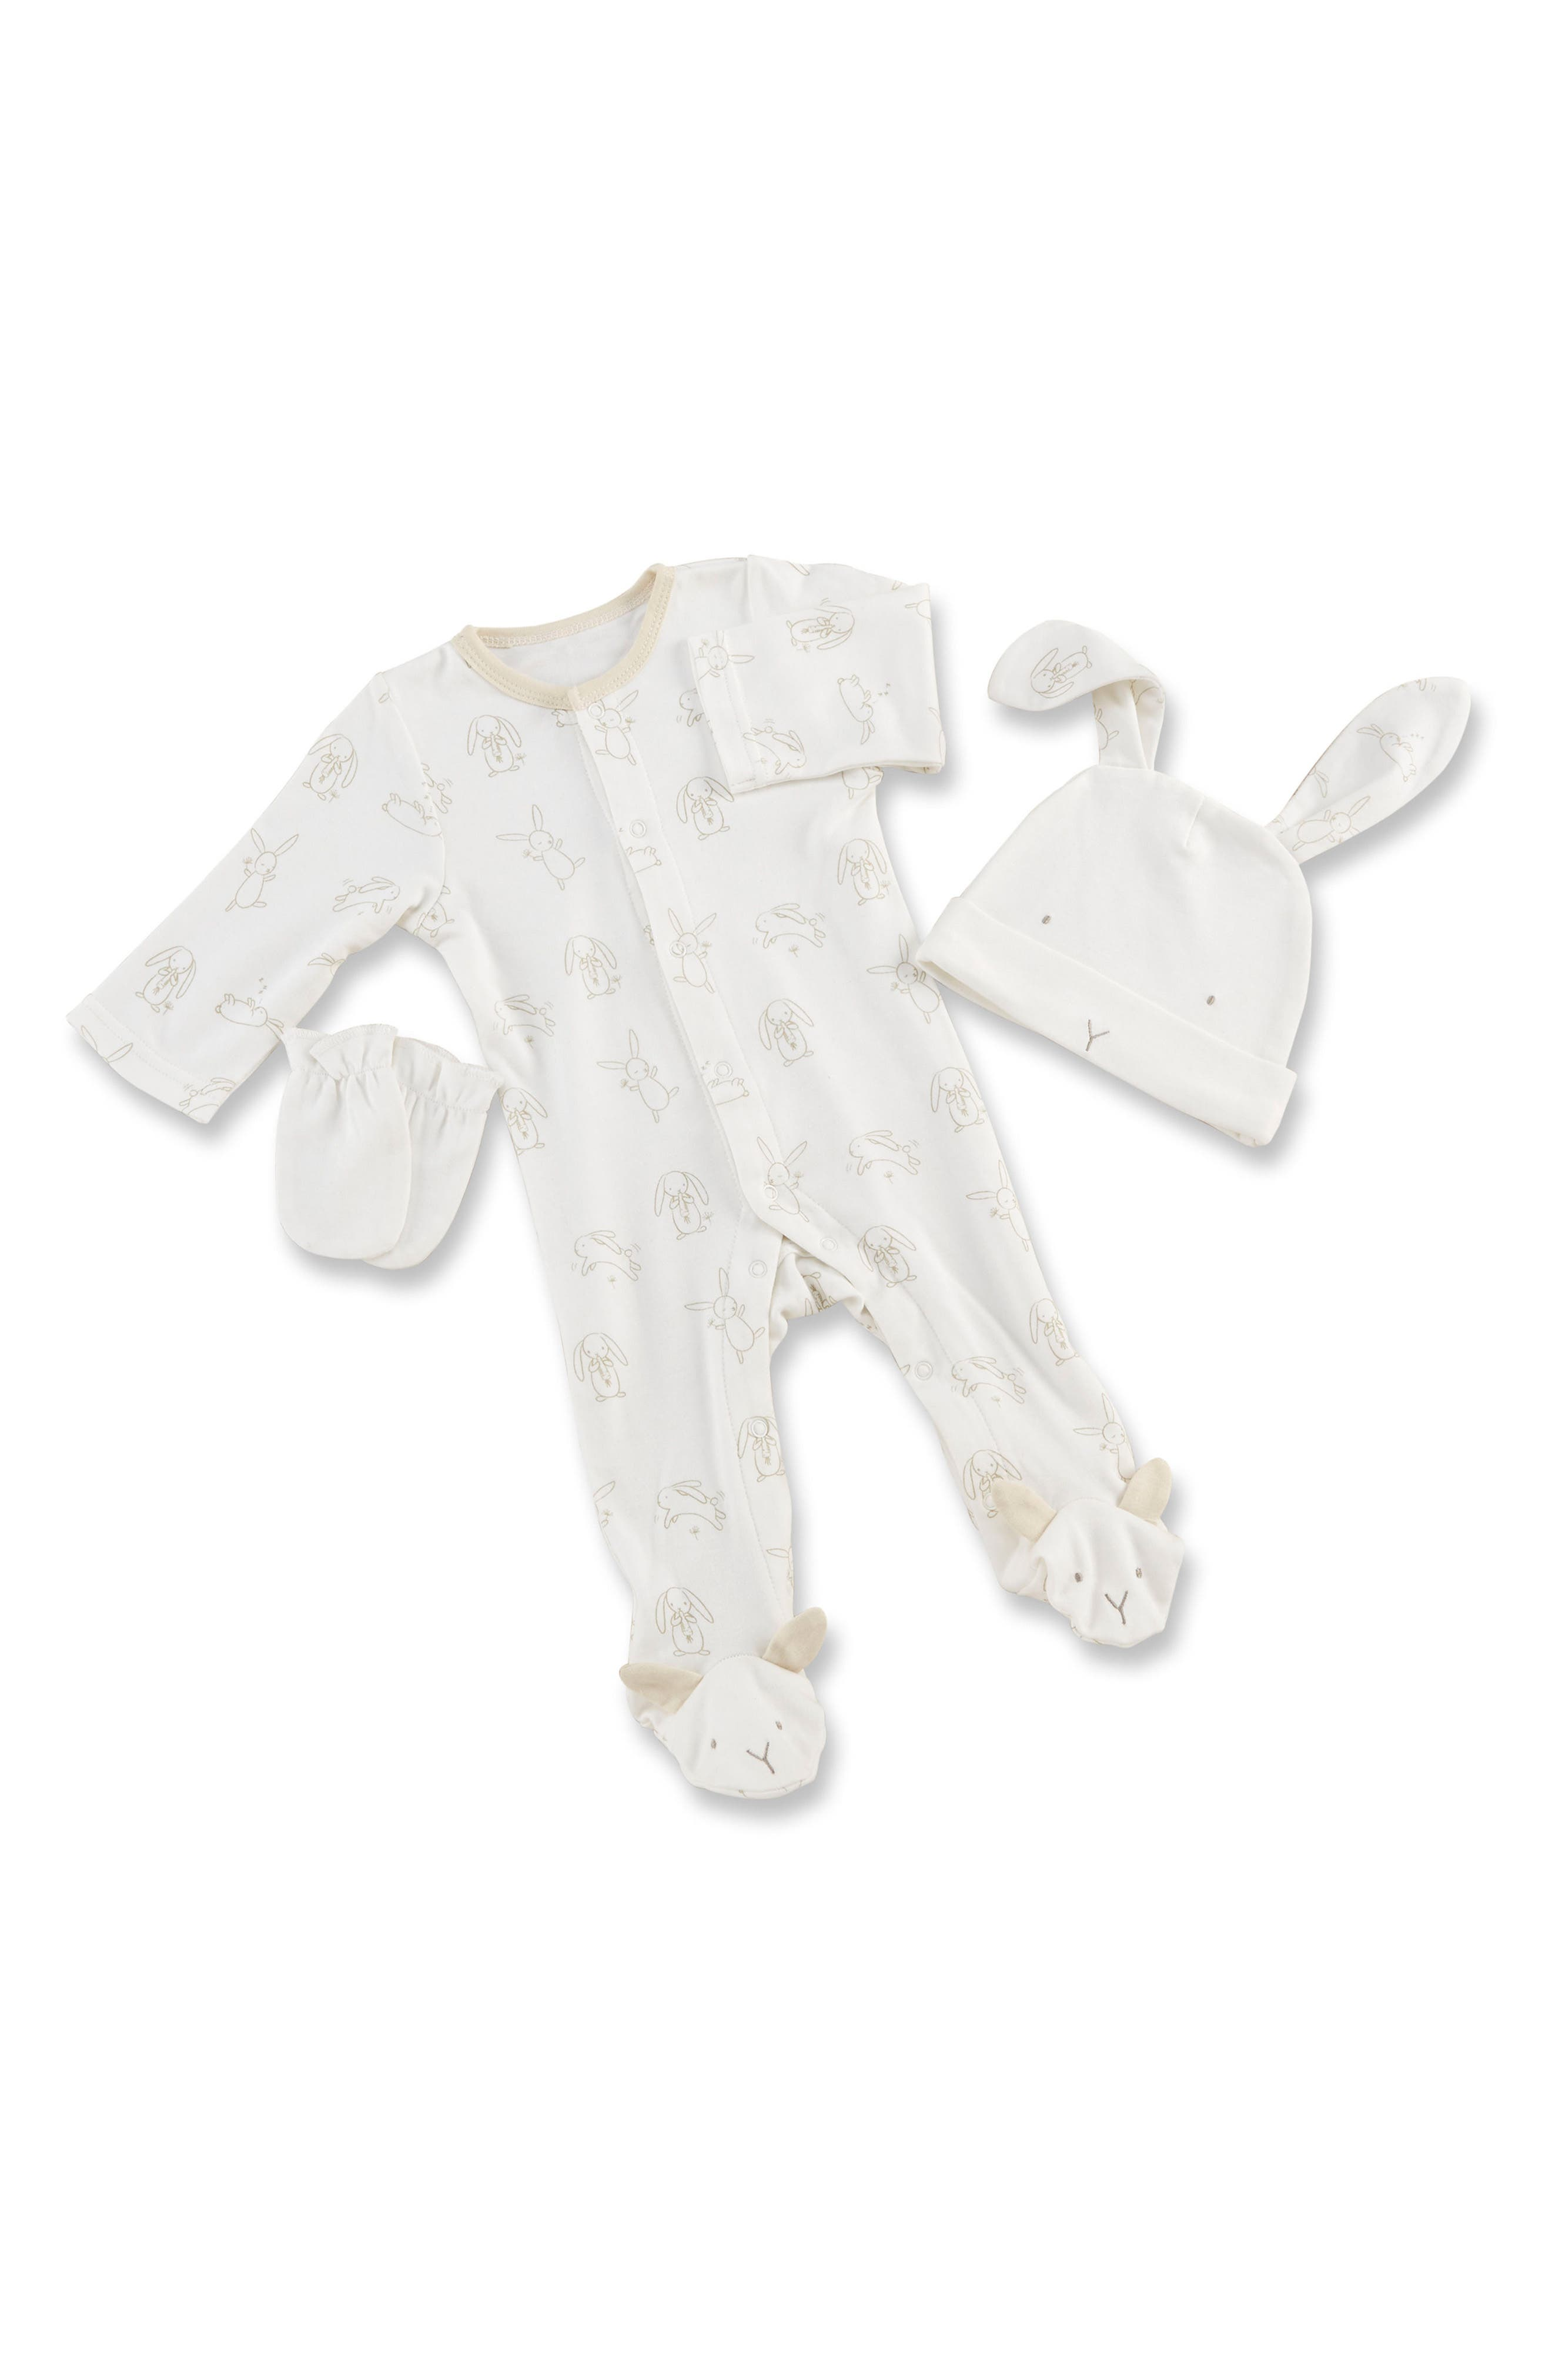 Nature Baby Footie, Hat & Mittens Set,                         Main,                         color, Beige And Grey